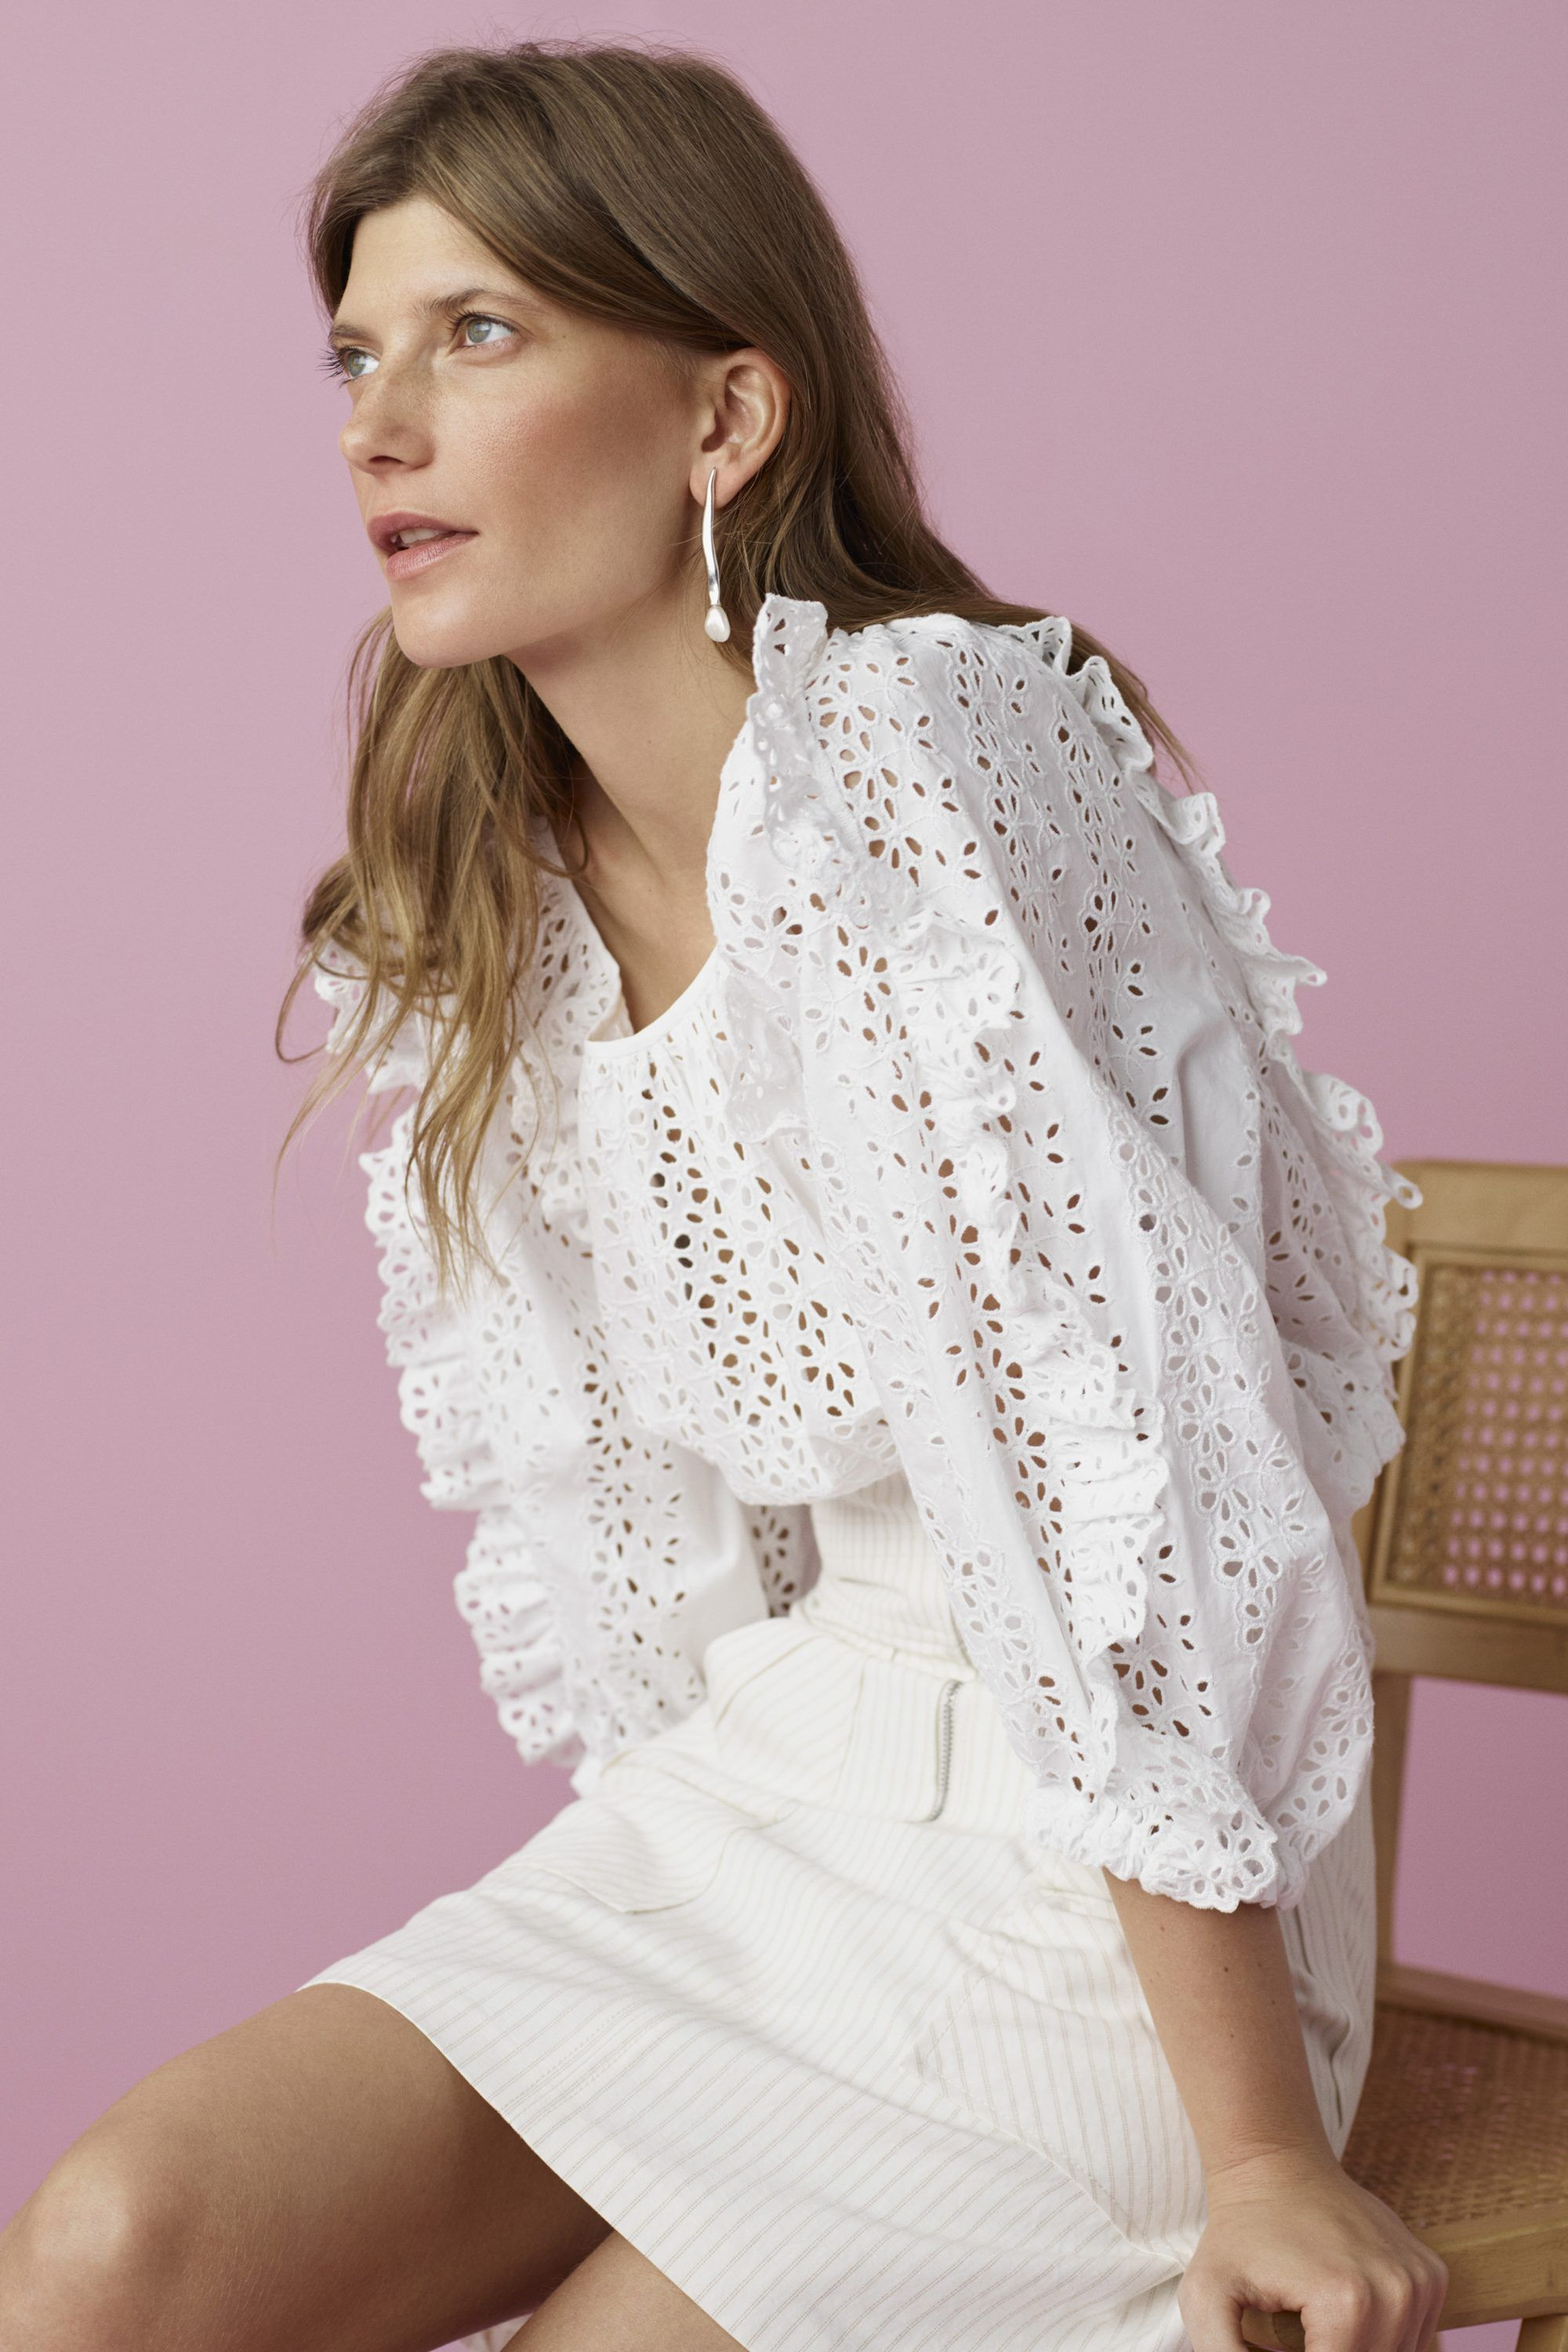 V neck white lace dress may 2019 Rebecca Taylor in   summer clothes  Pinterest  Fashion